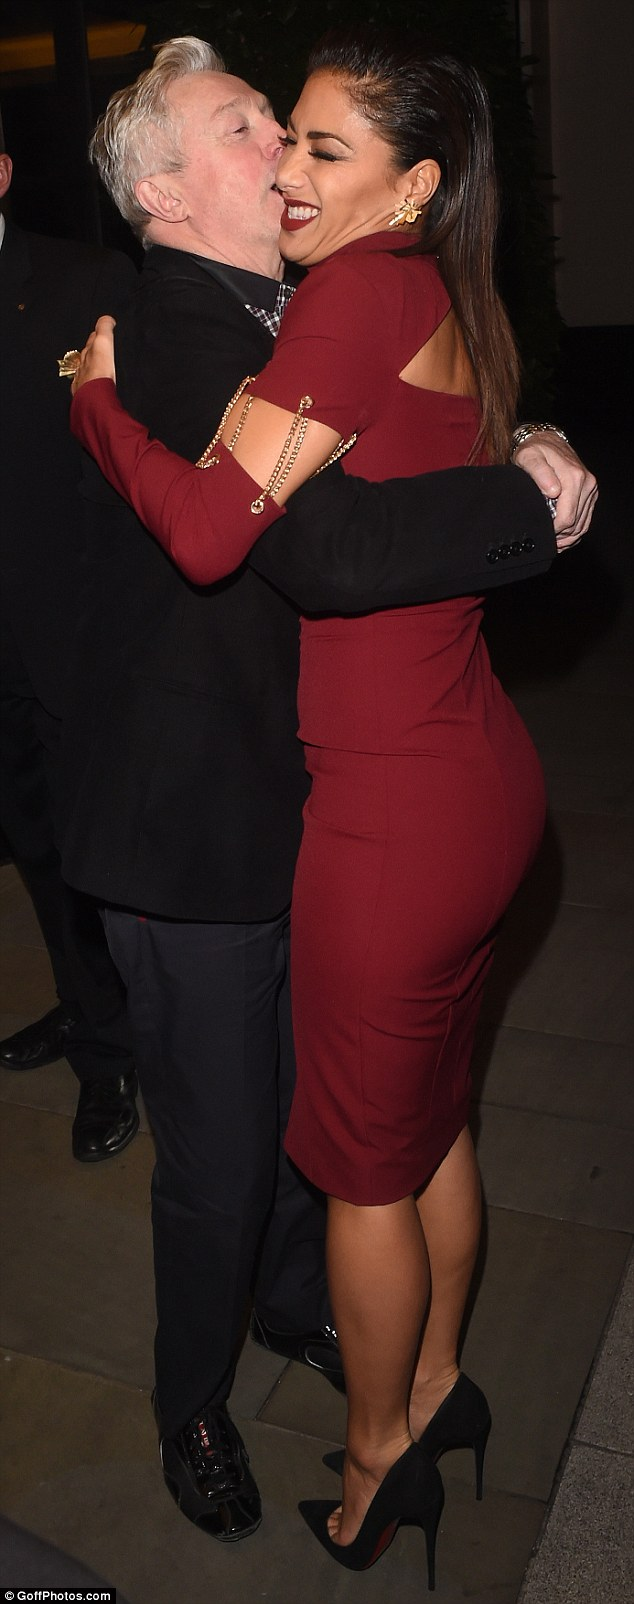 Louis Walsh certainly looked like he was having a merry old time as he hugged Nicole Scherzinger outside a London hotel